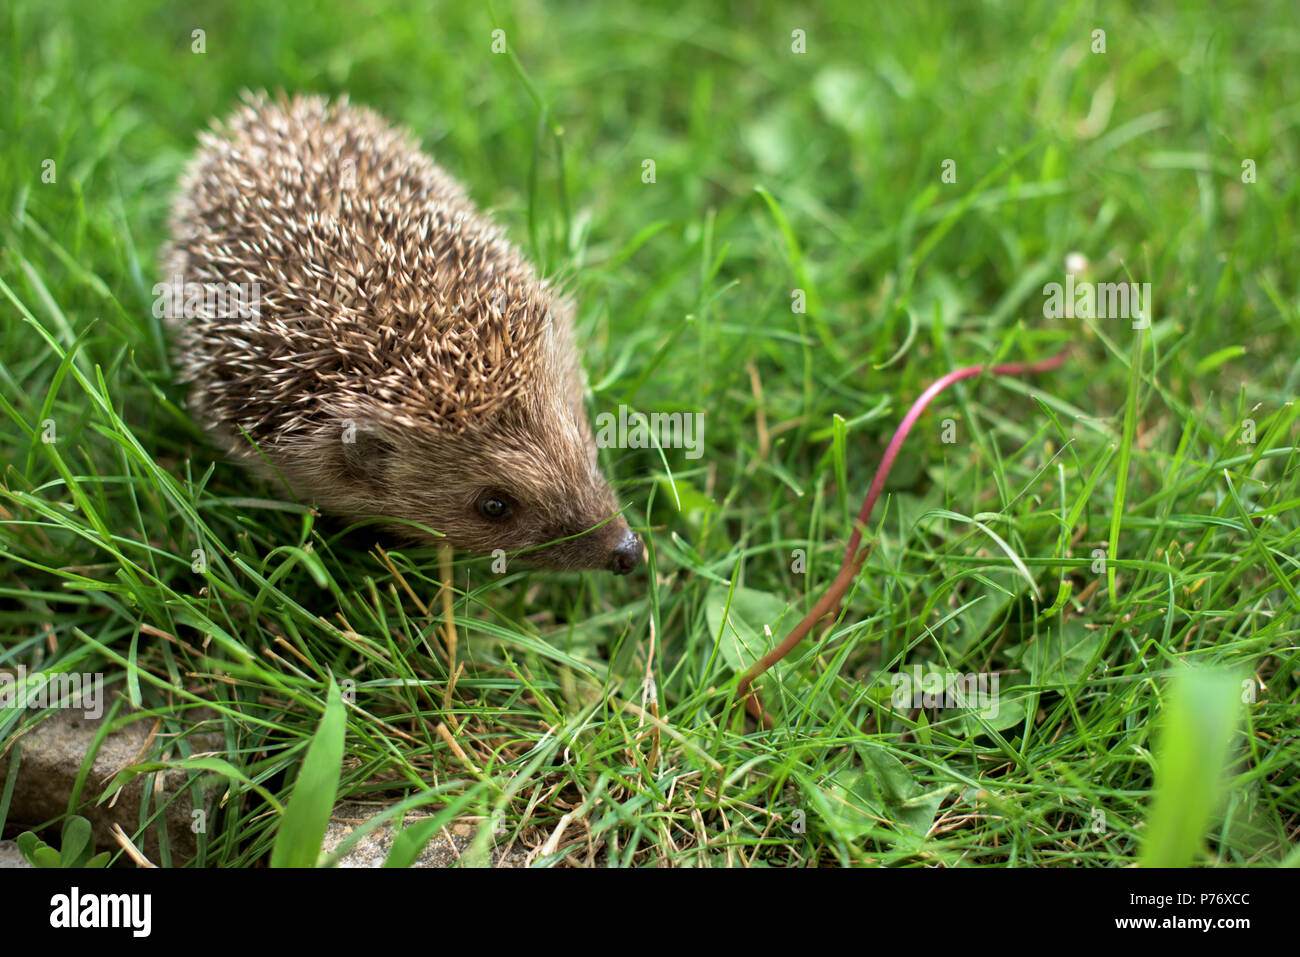 Small hedgehog in a garden - close up - Stock Image